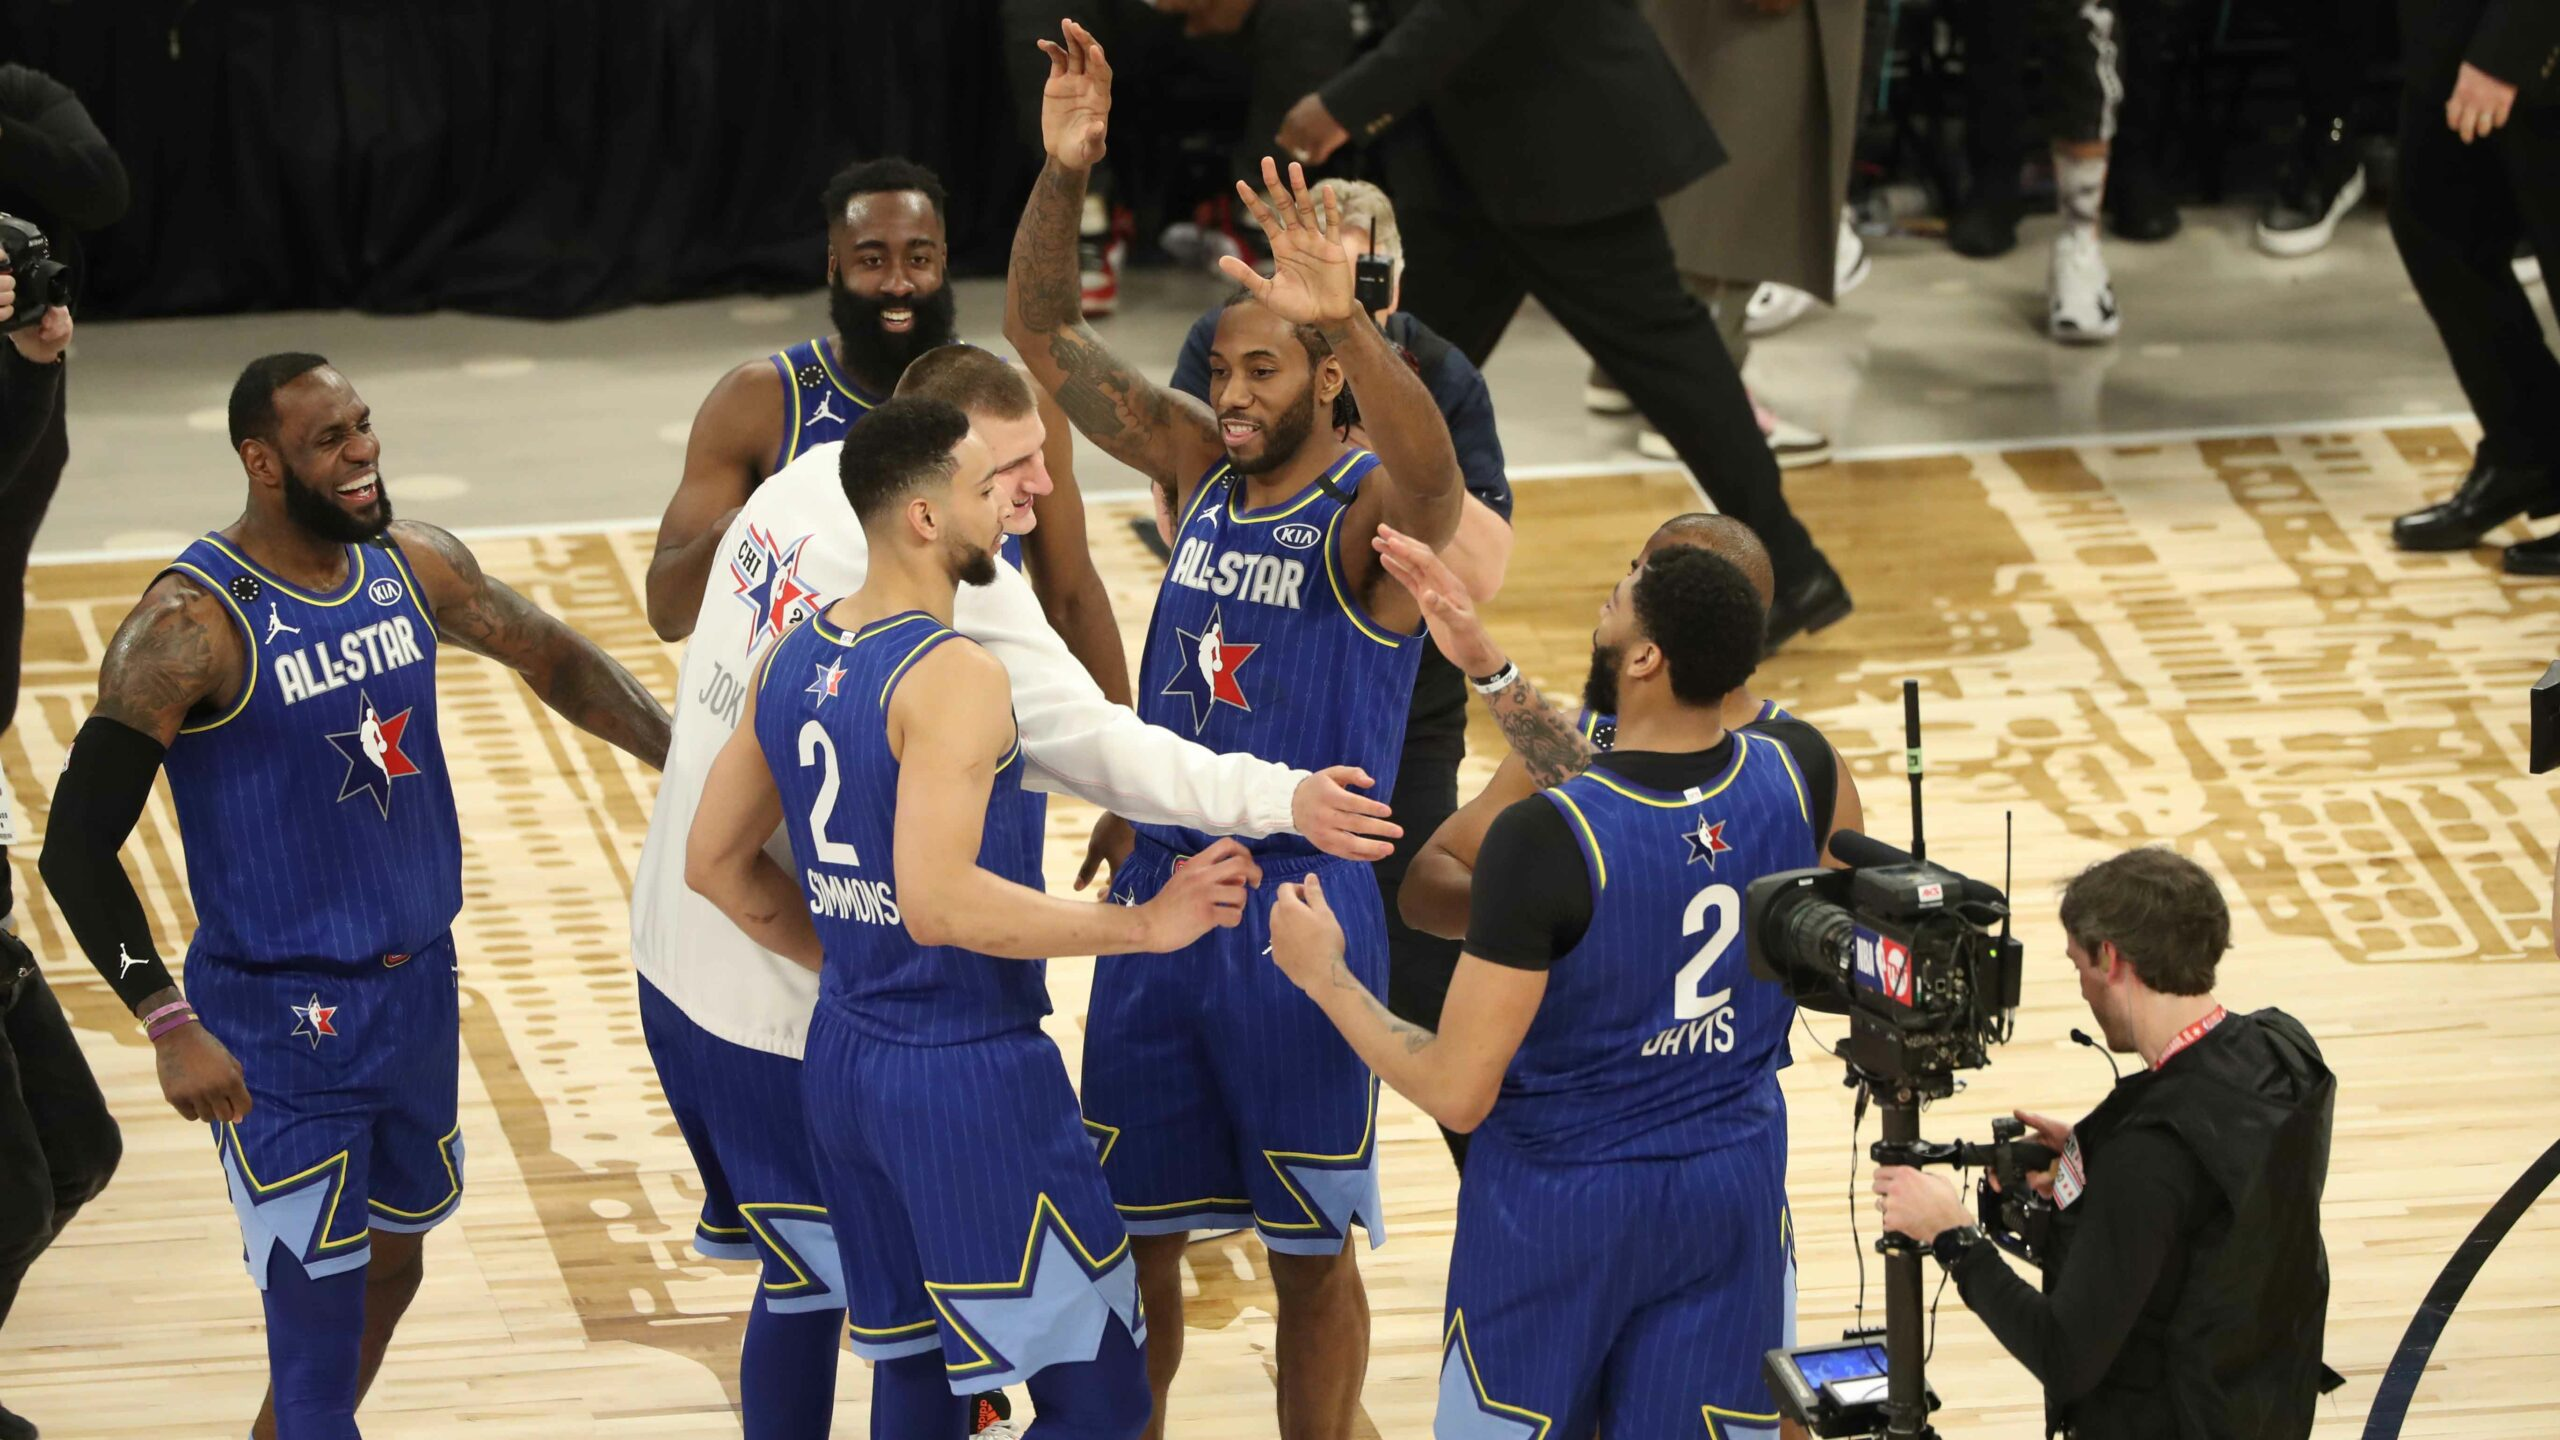 New look All-Star Game unleashes Kobe Bryant-level intensity in Team LeBron victory